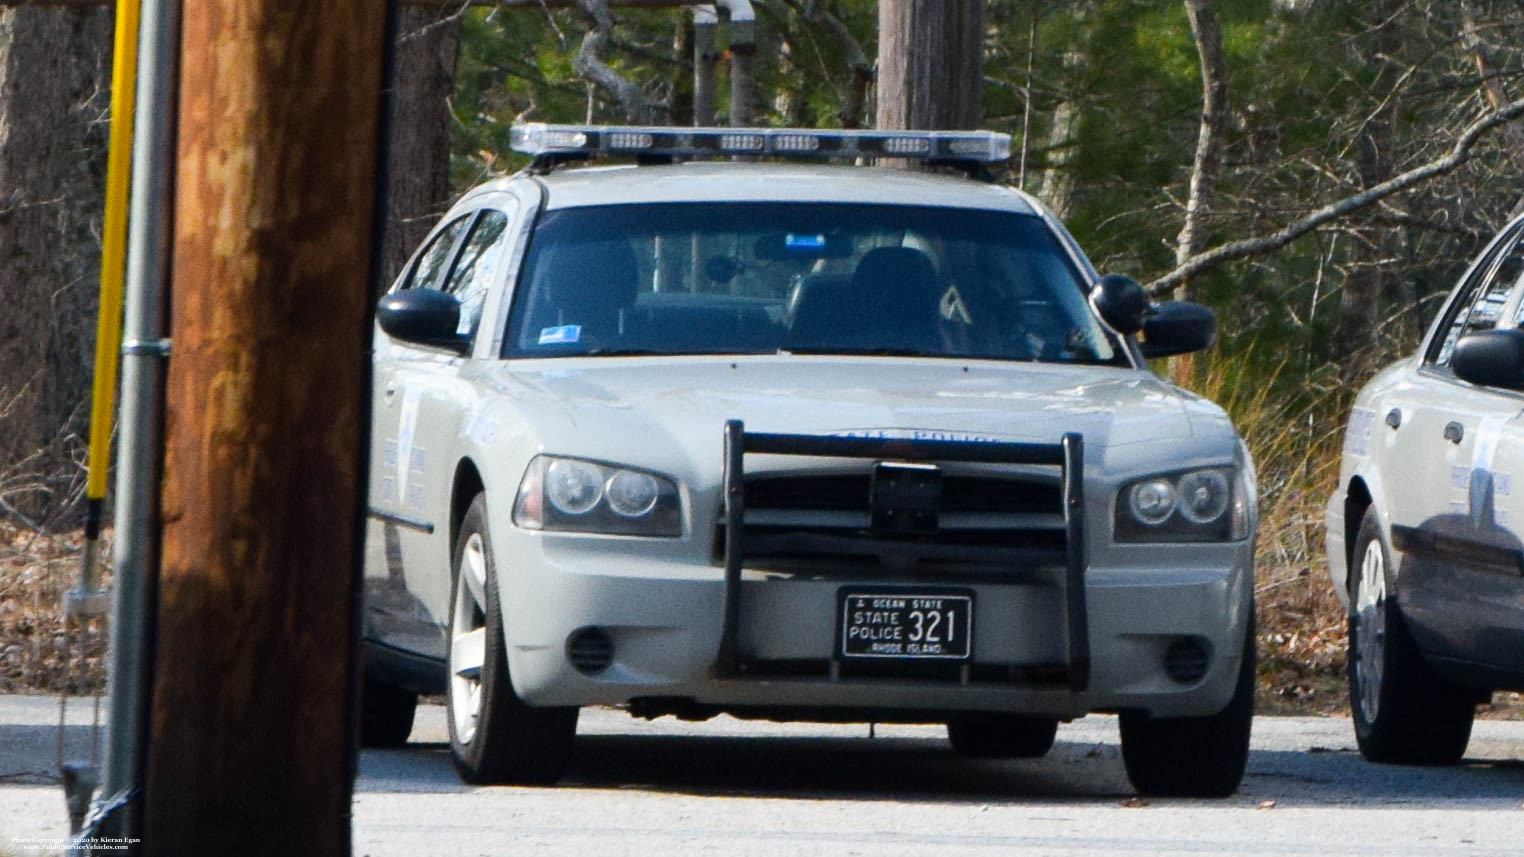 A photo  of Rhode Island State Police             Cruiser 321, a 2006-2010 Dodge Charger             taken by Kieran Egan